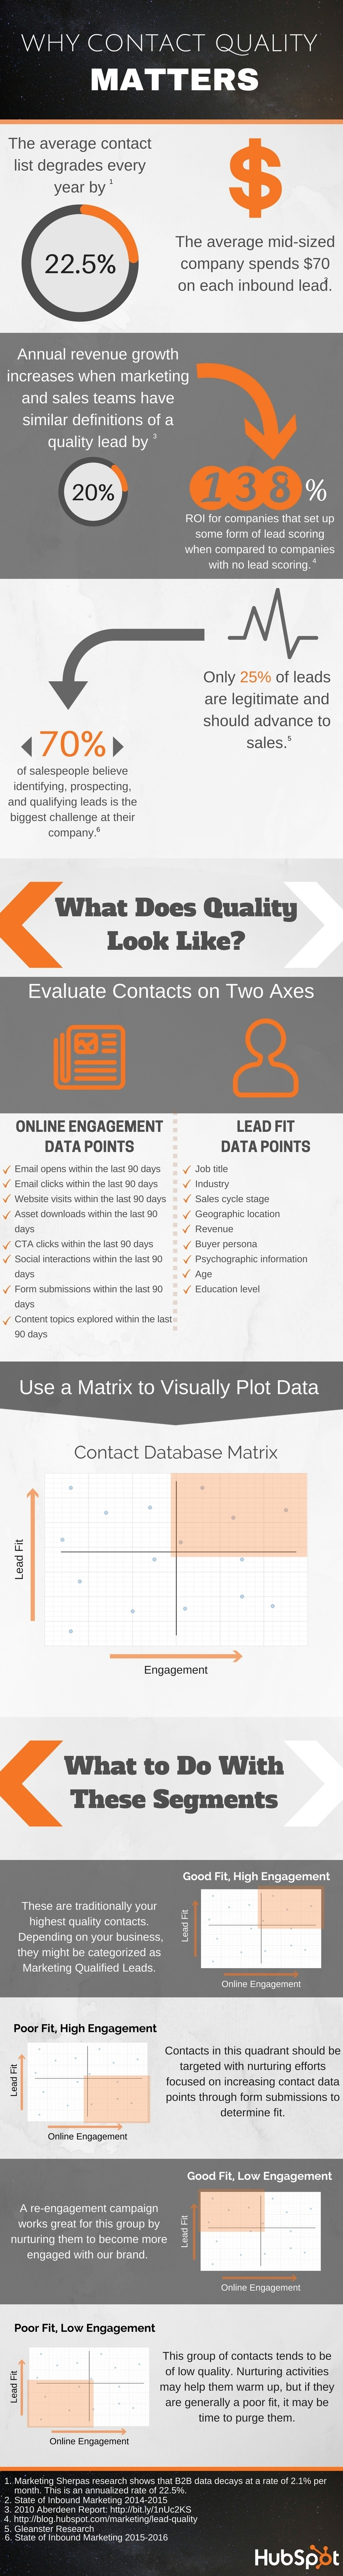 Quality Contacts Infographic-1.jpg